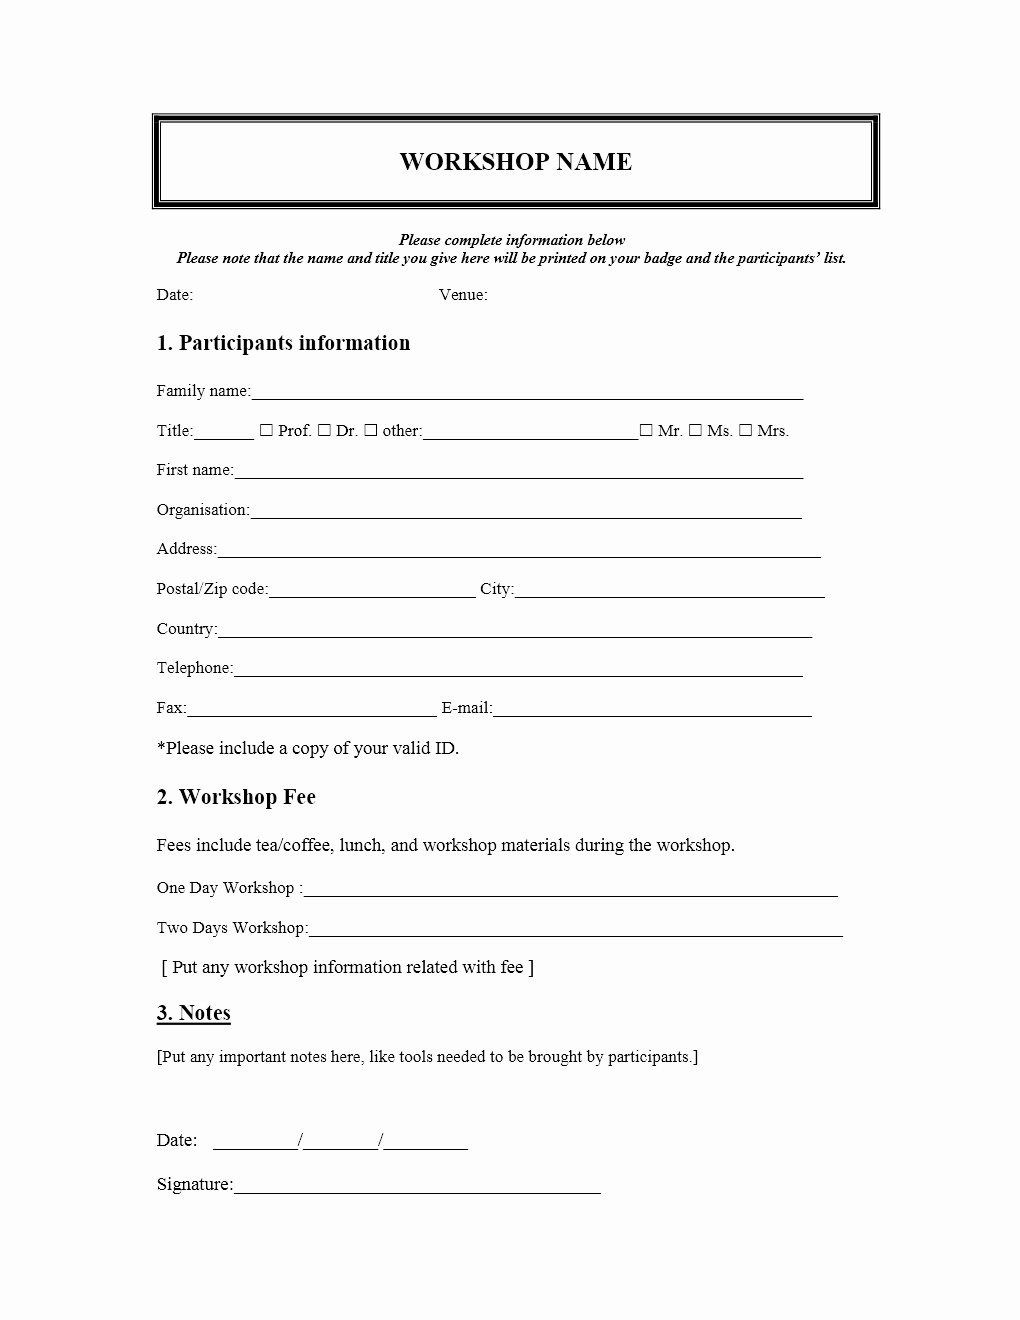 Free Registration form Template Fresh Workshop Registration form